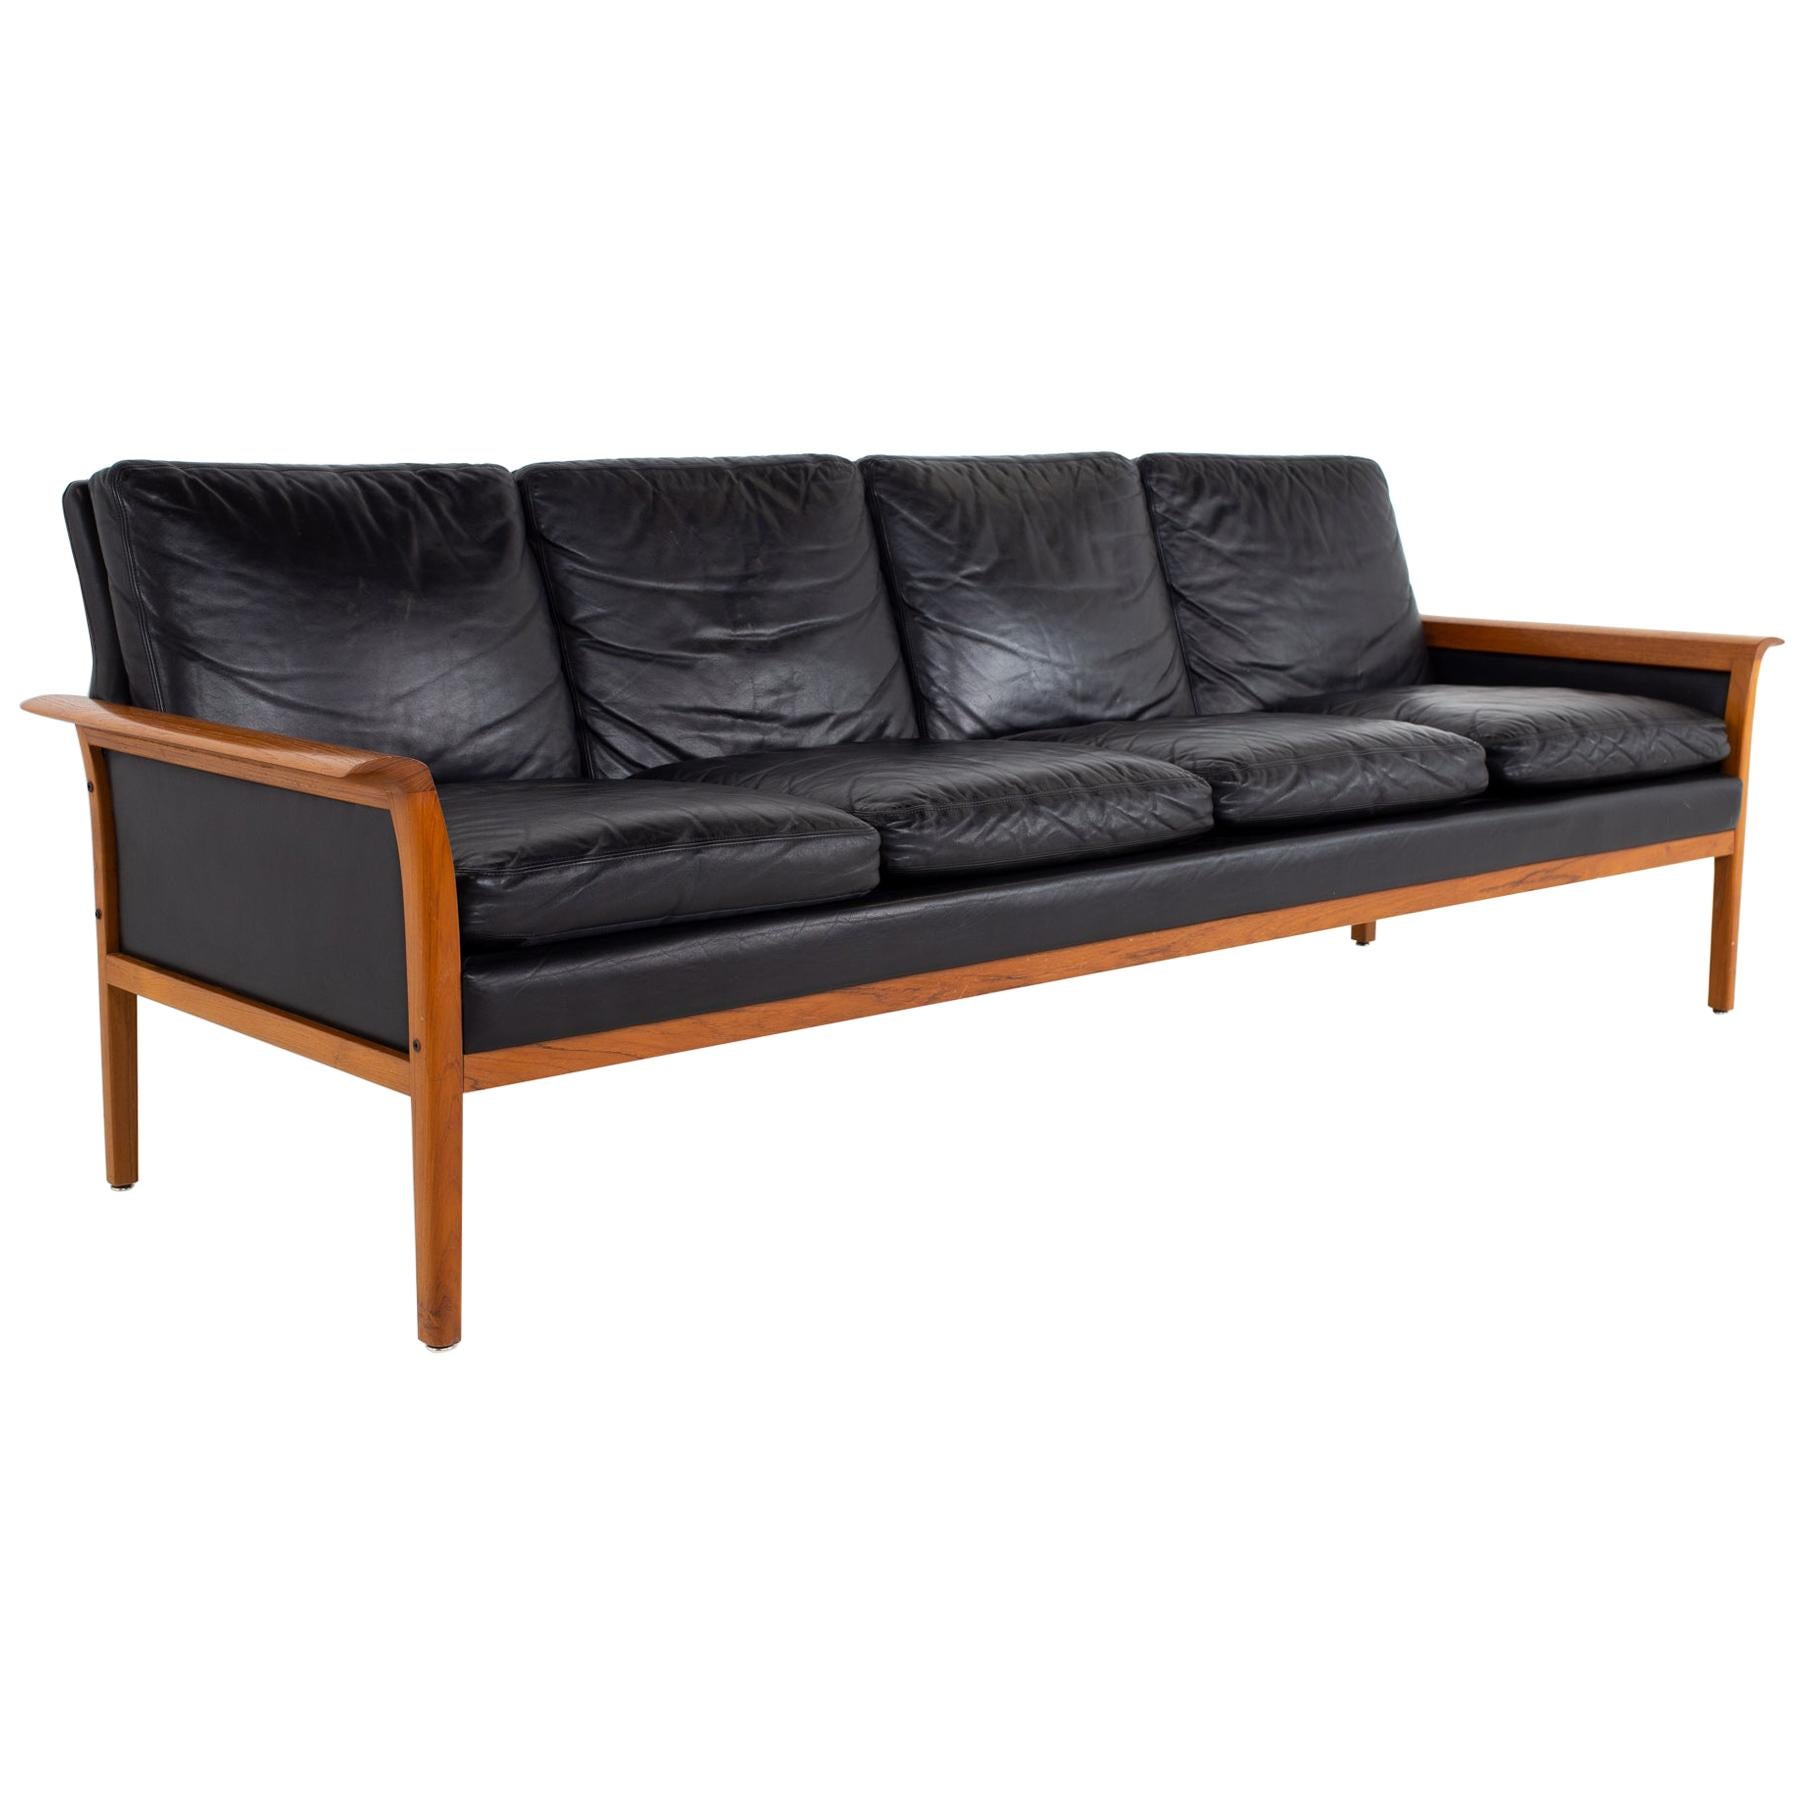 Knut Sæter for Vatne Mobler Mid Century Danish Teak and Black Leather Sofa